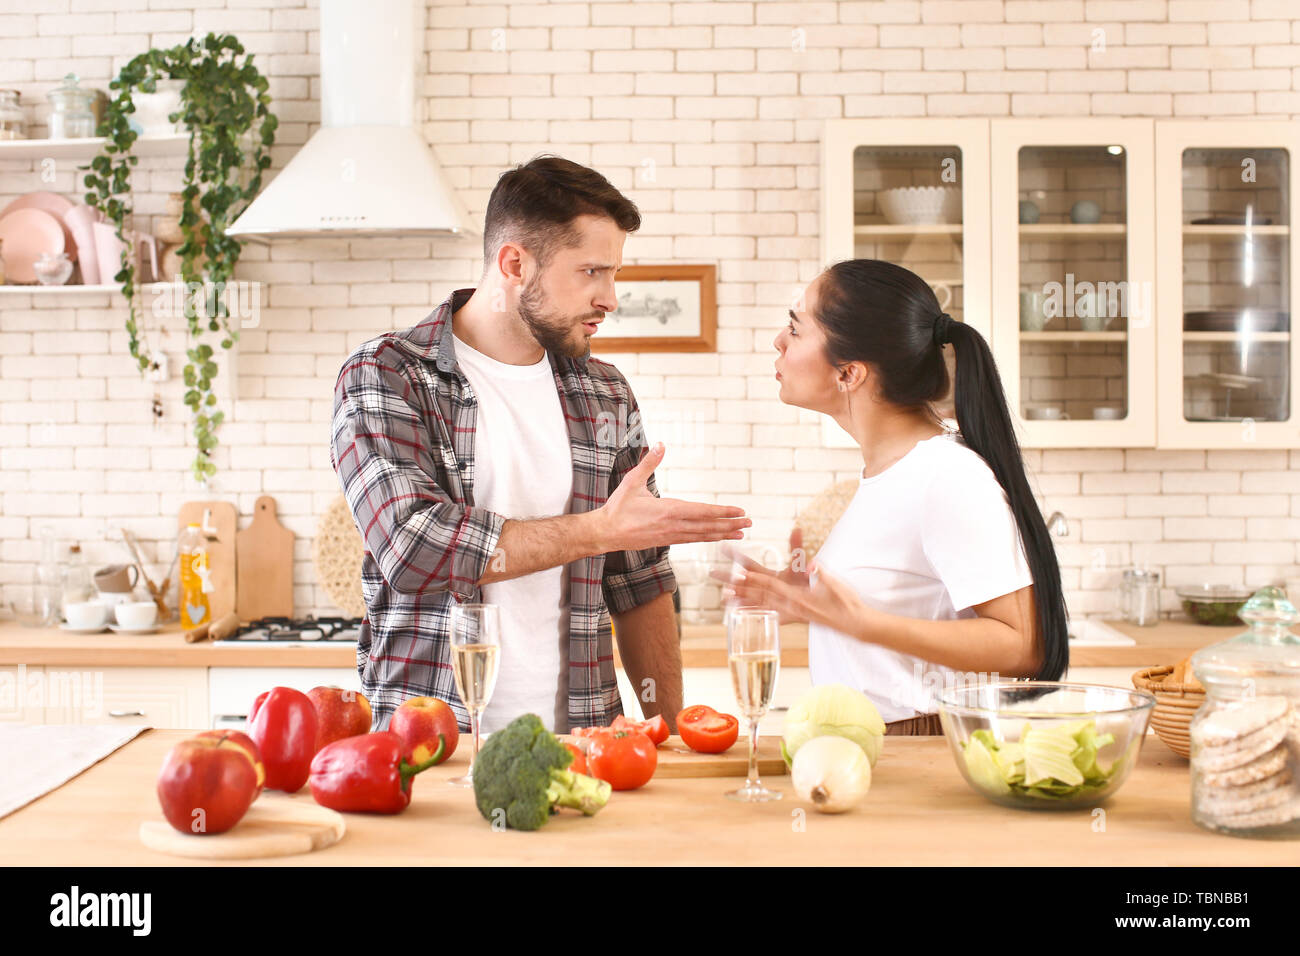 Young couple quarreling in kitchen - Stock Image